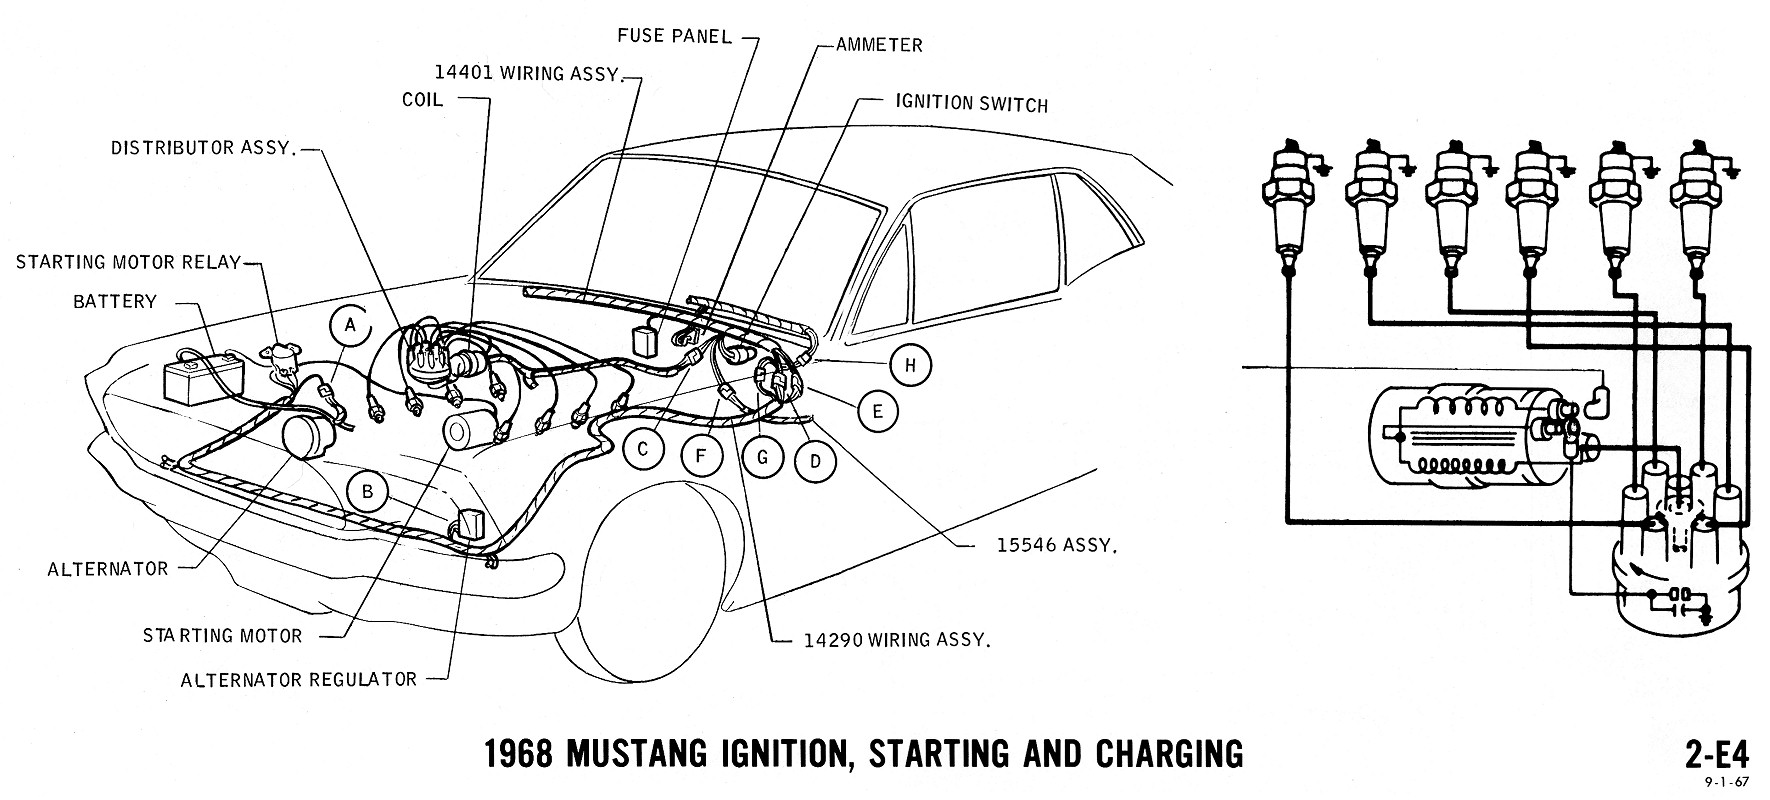 1968 mustang wiring diagrams and vacuum schematics average joe rh averagejoerestoration com 1966 Mustang Wiring Diagram 1969 Mustang Wiring Diagram